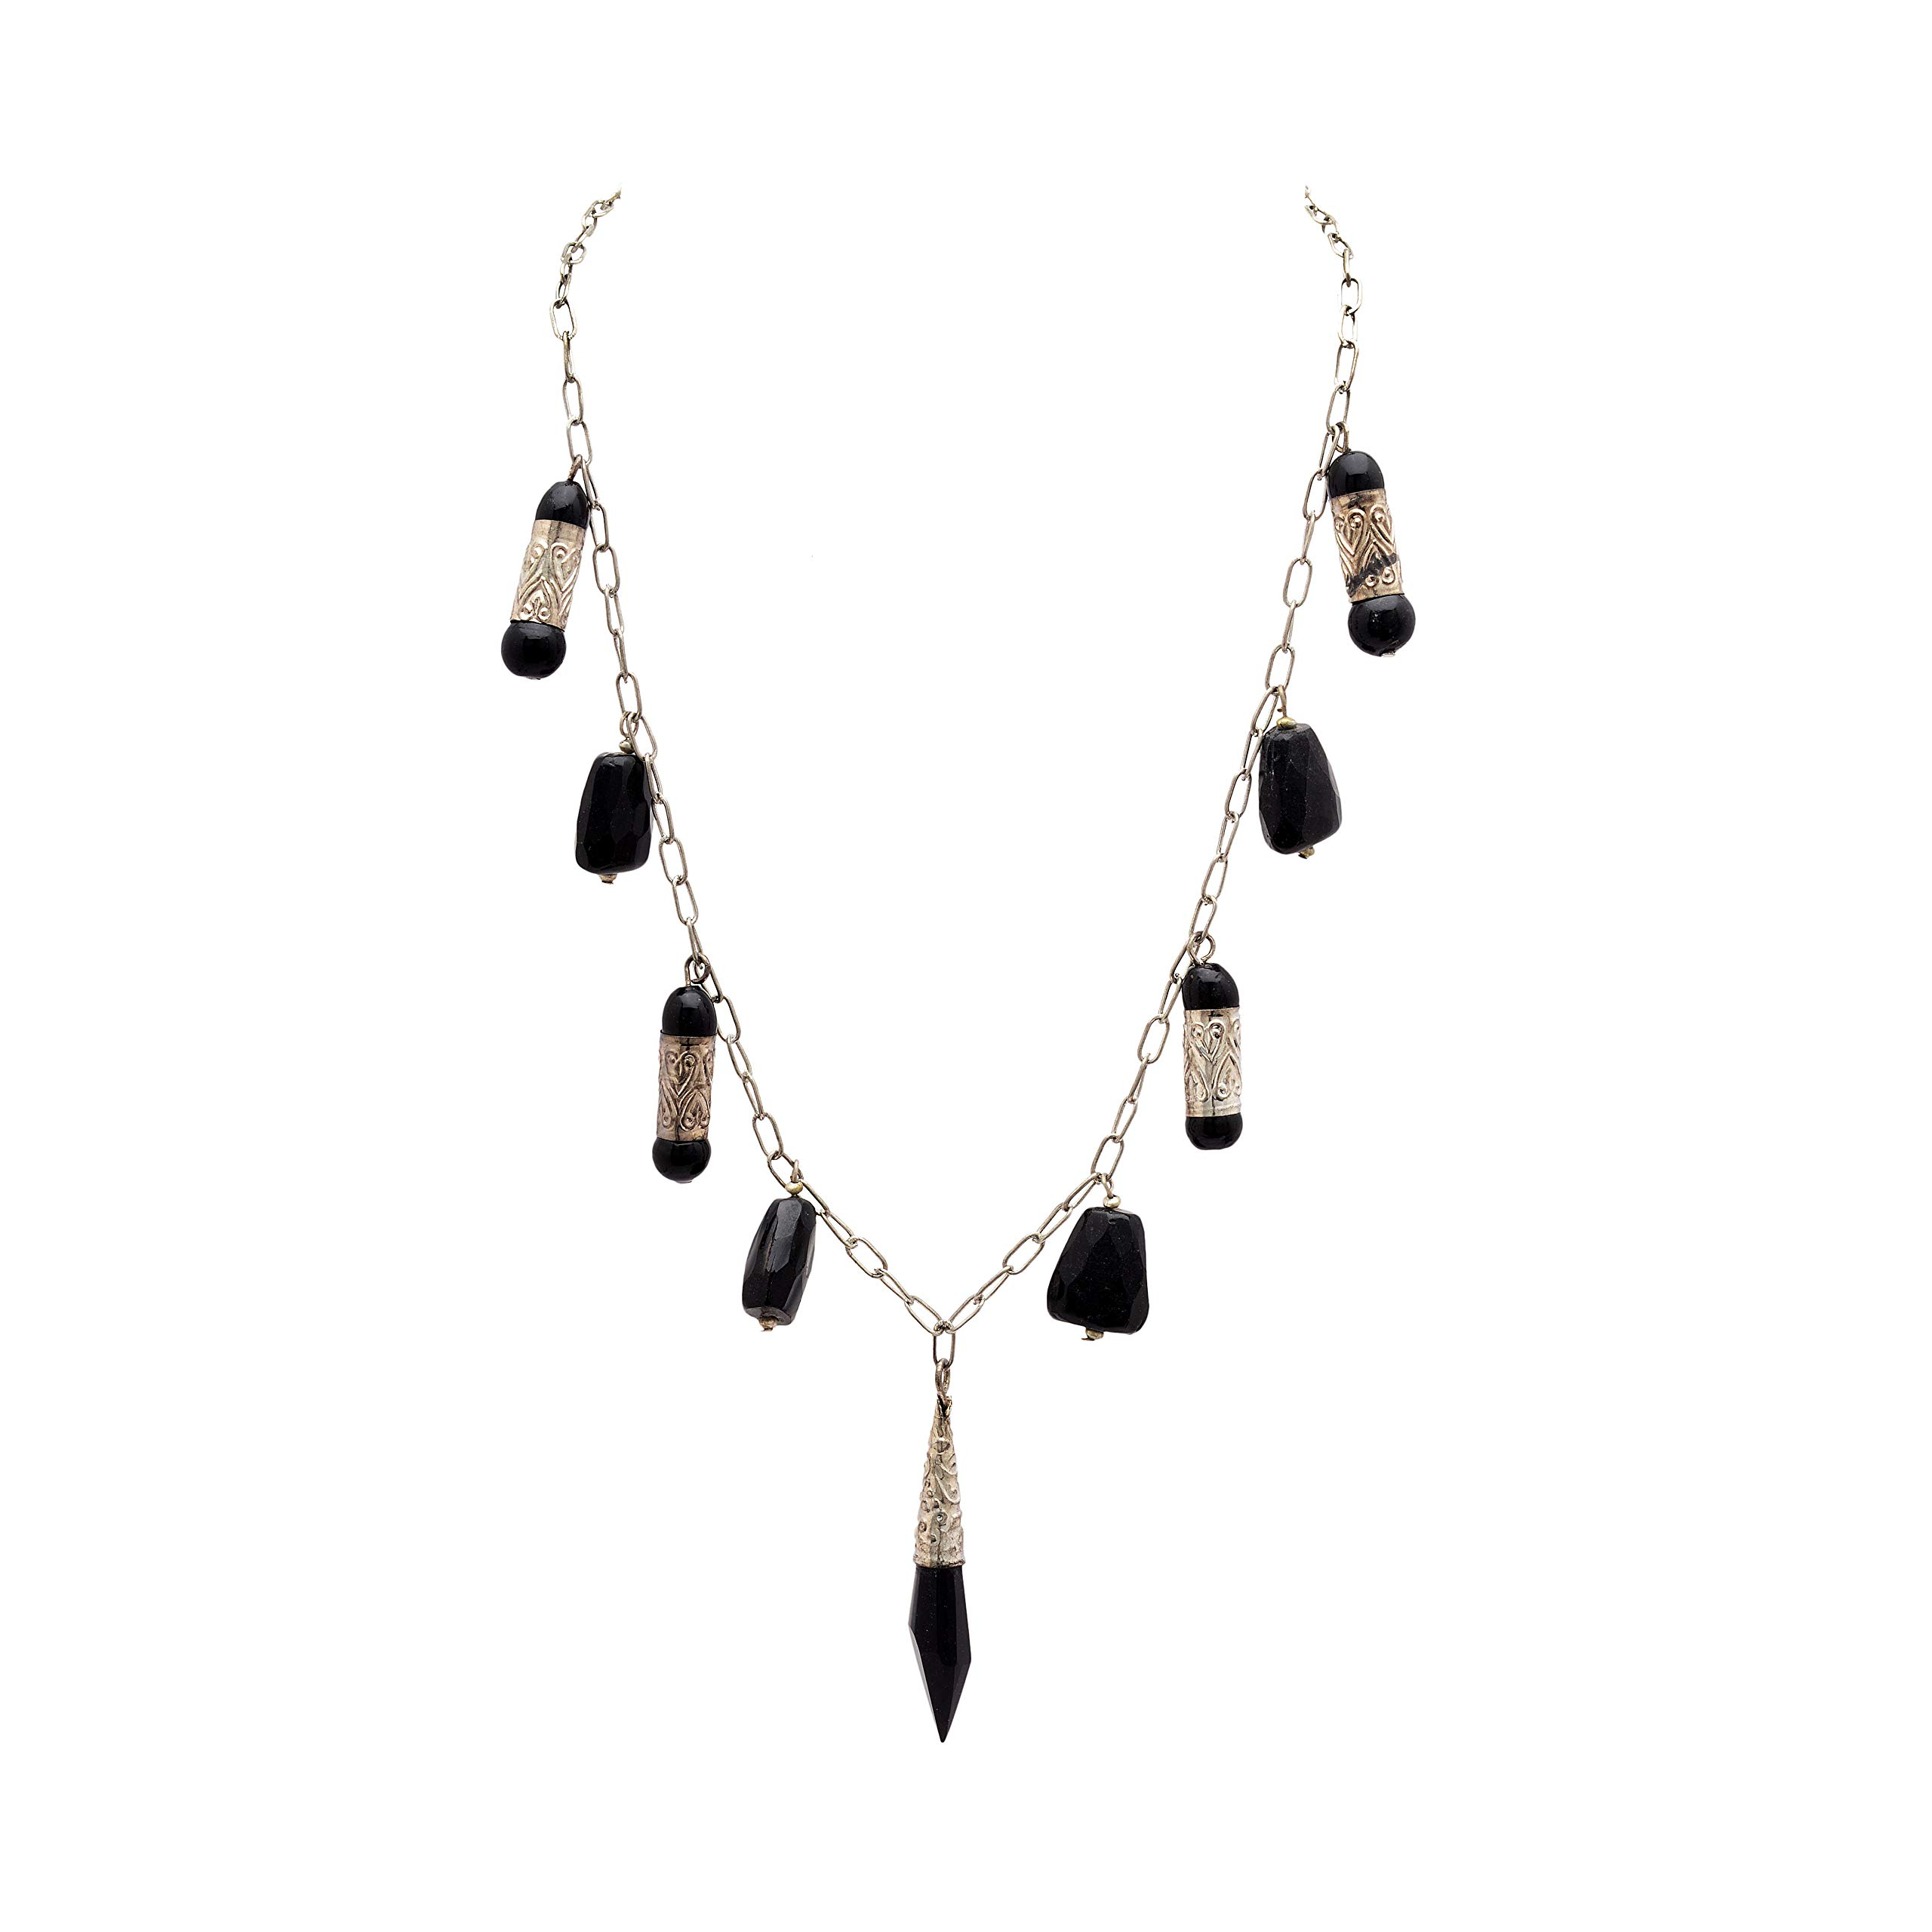 Zephyrr Necklace Women Stylish Black Beads Oxidized Silver Anchor Chain Chunky for Girls and Women